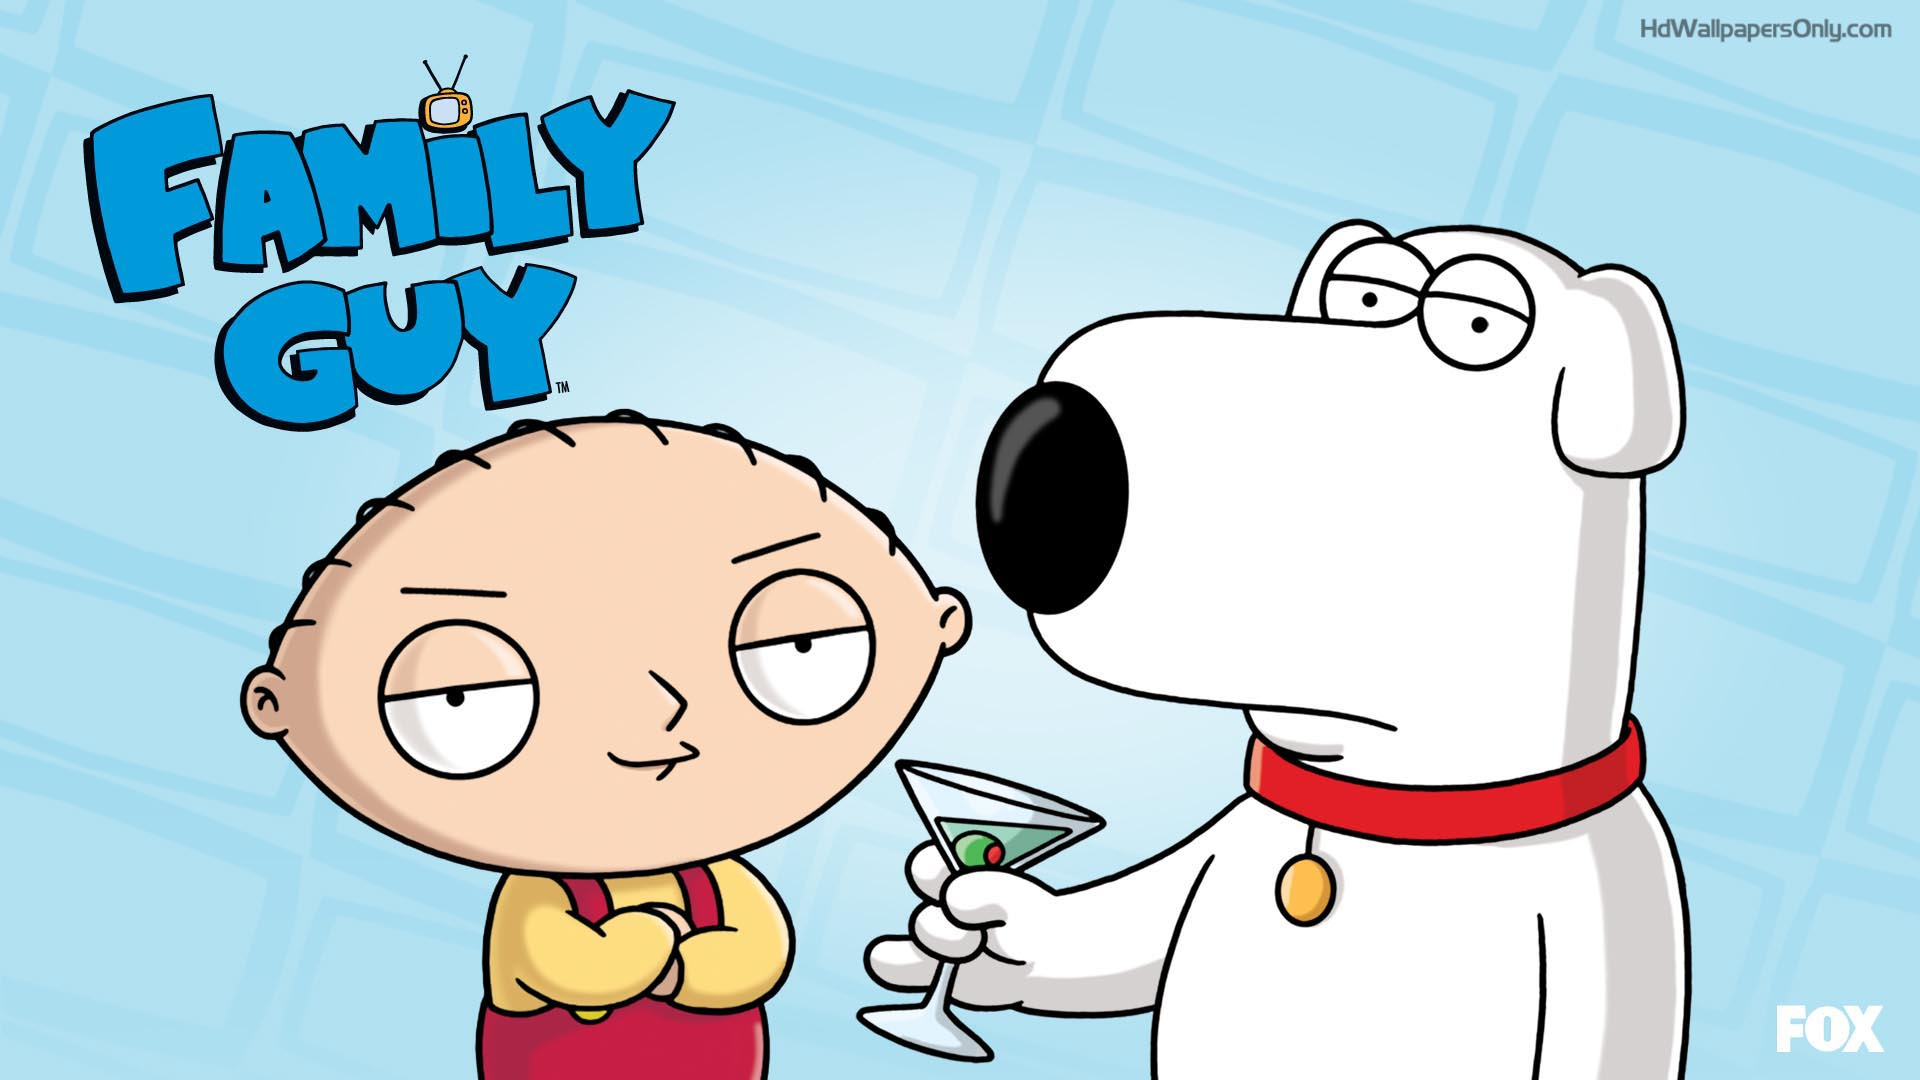 Family Guy Funny Wallpaper Page 1920x1080